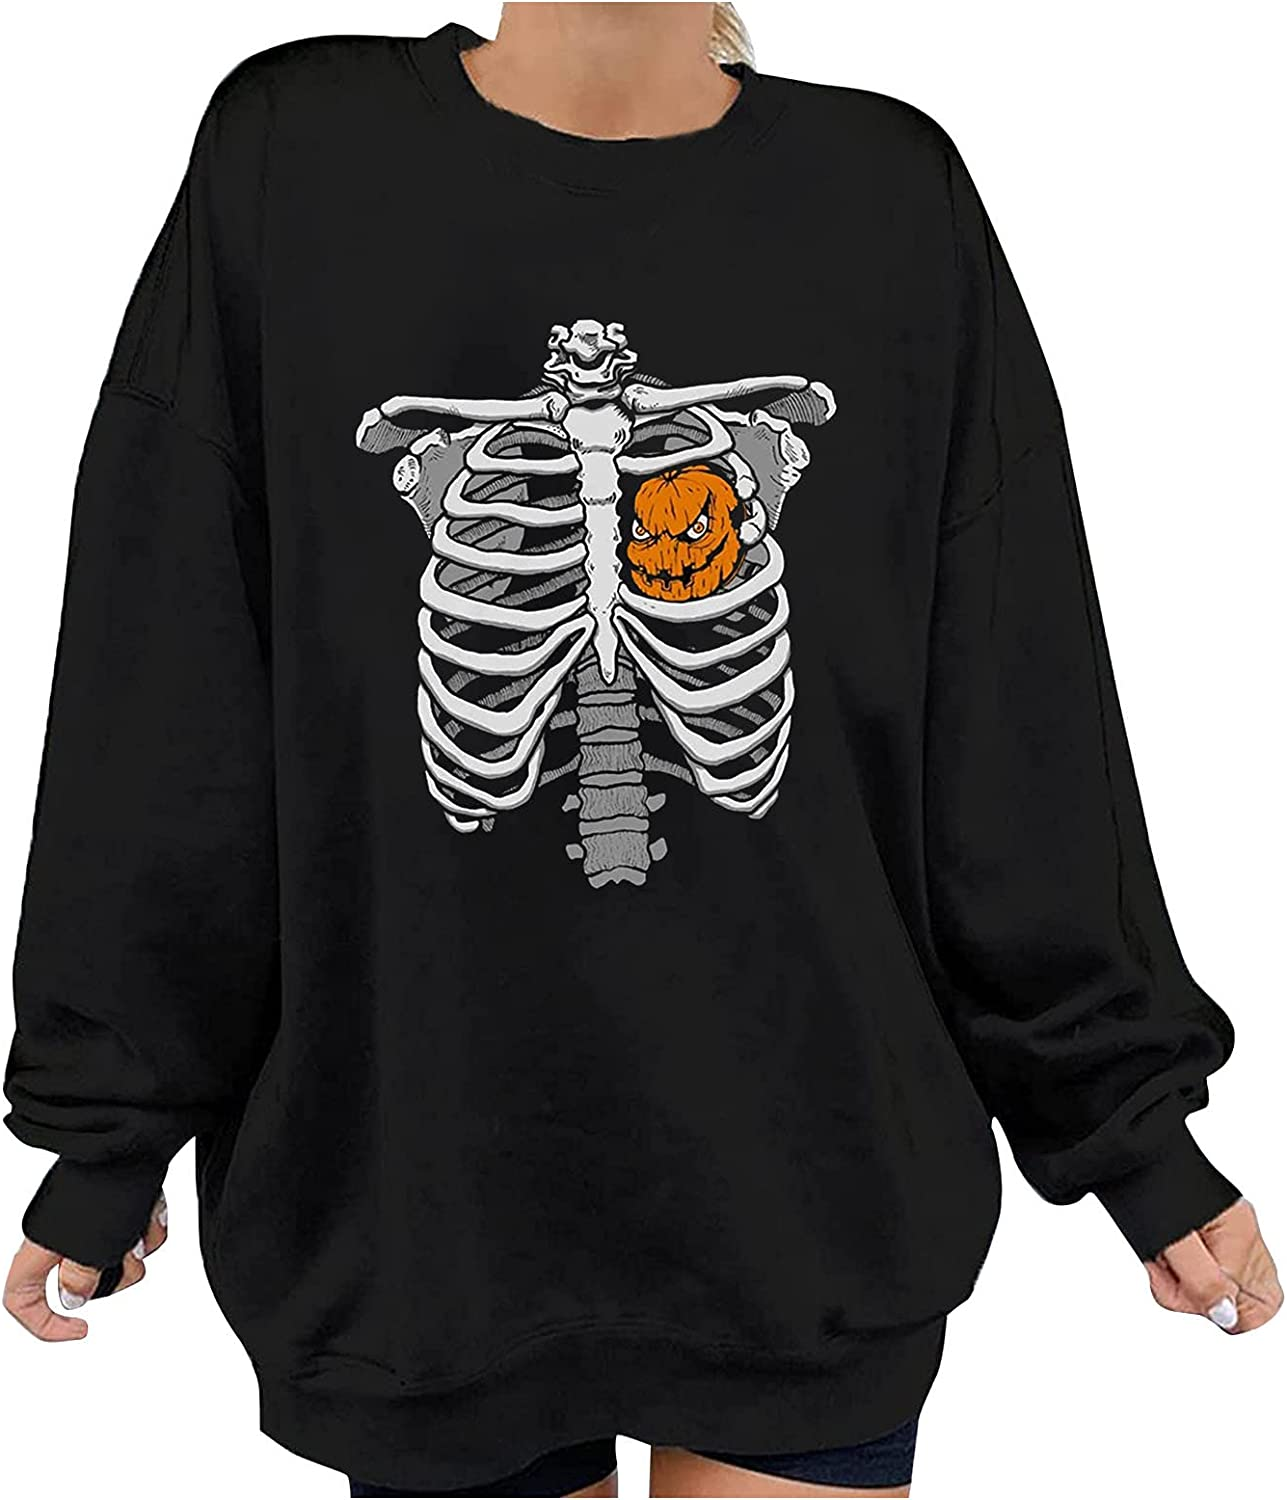 Pandaie Halloween Long Sales for sale Sleeve Shirts Skeleton Max 88% OFF Rib Women Cage